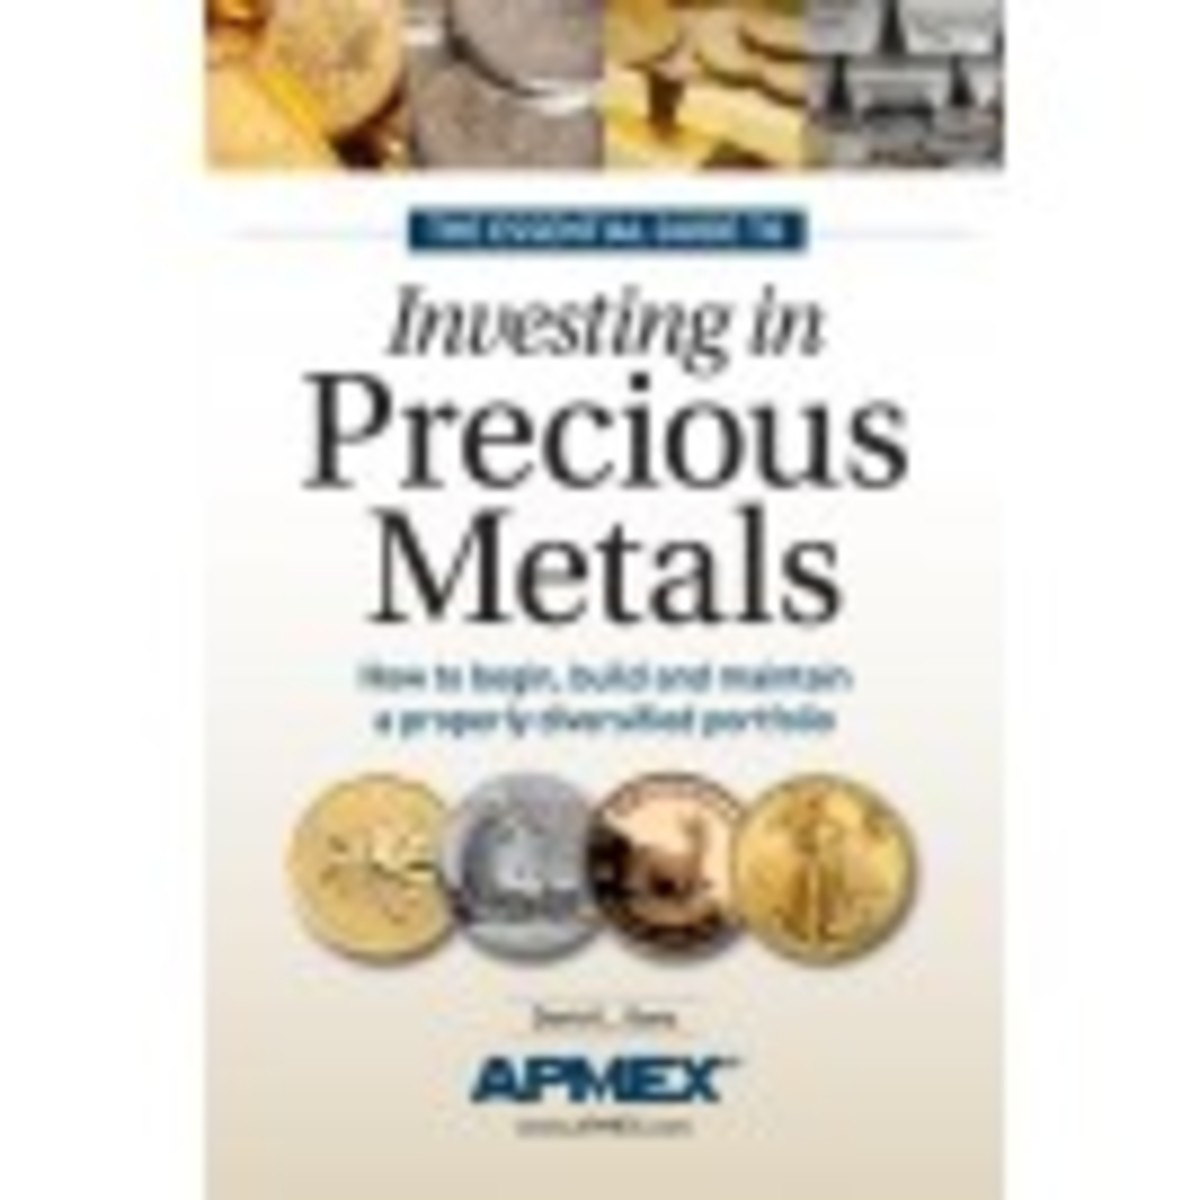 Learn about all the ways you can add precious metals to your portfolio.